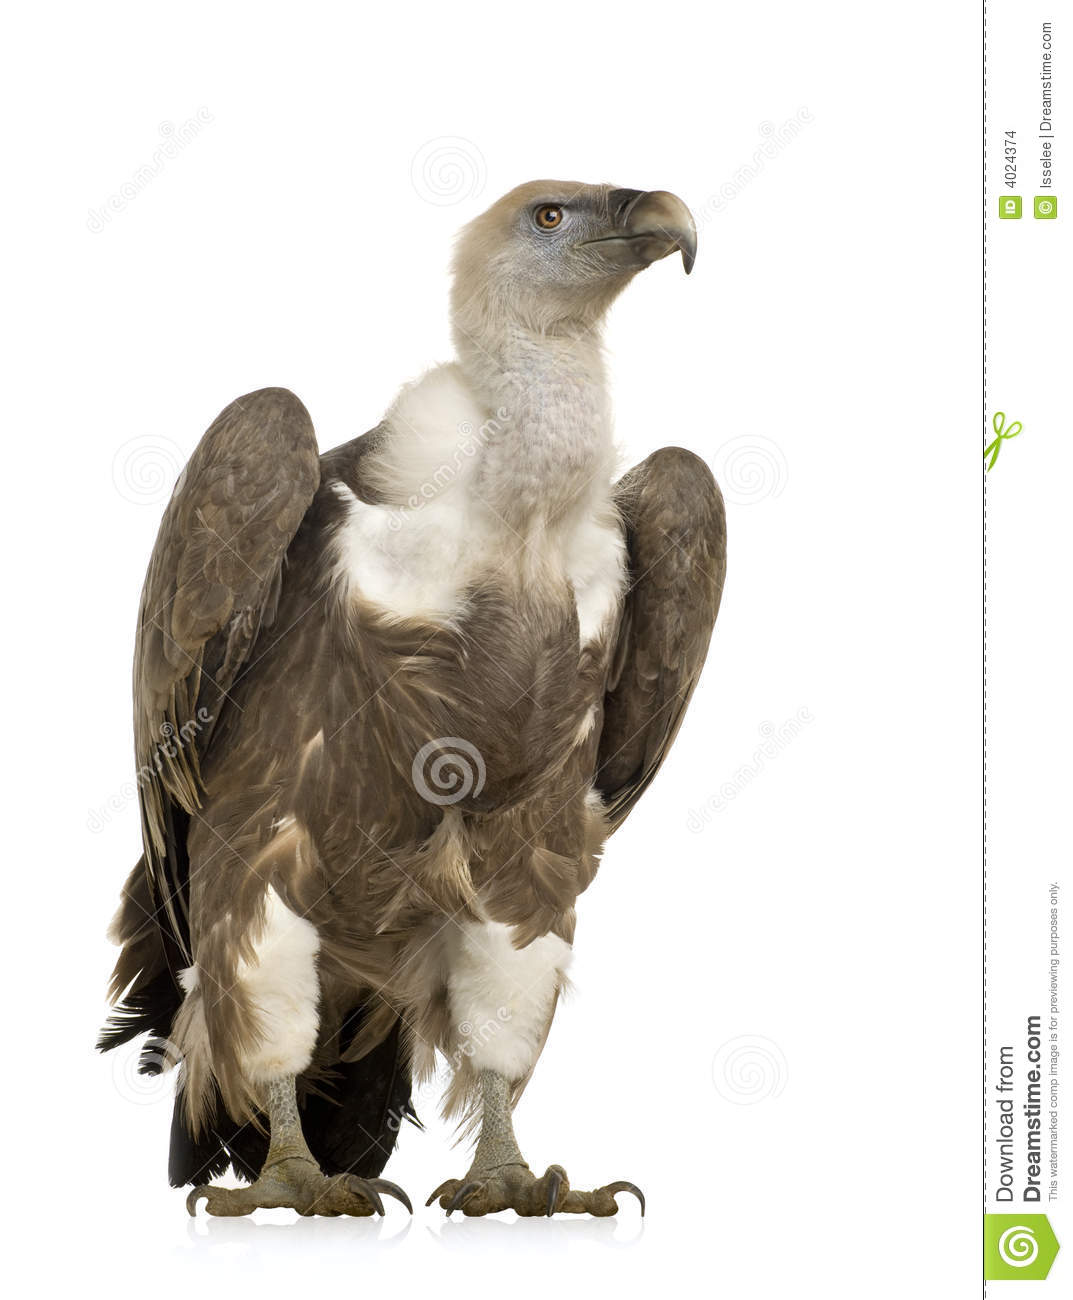 Griffon Vulture clipart #17, Download drawings